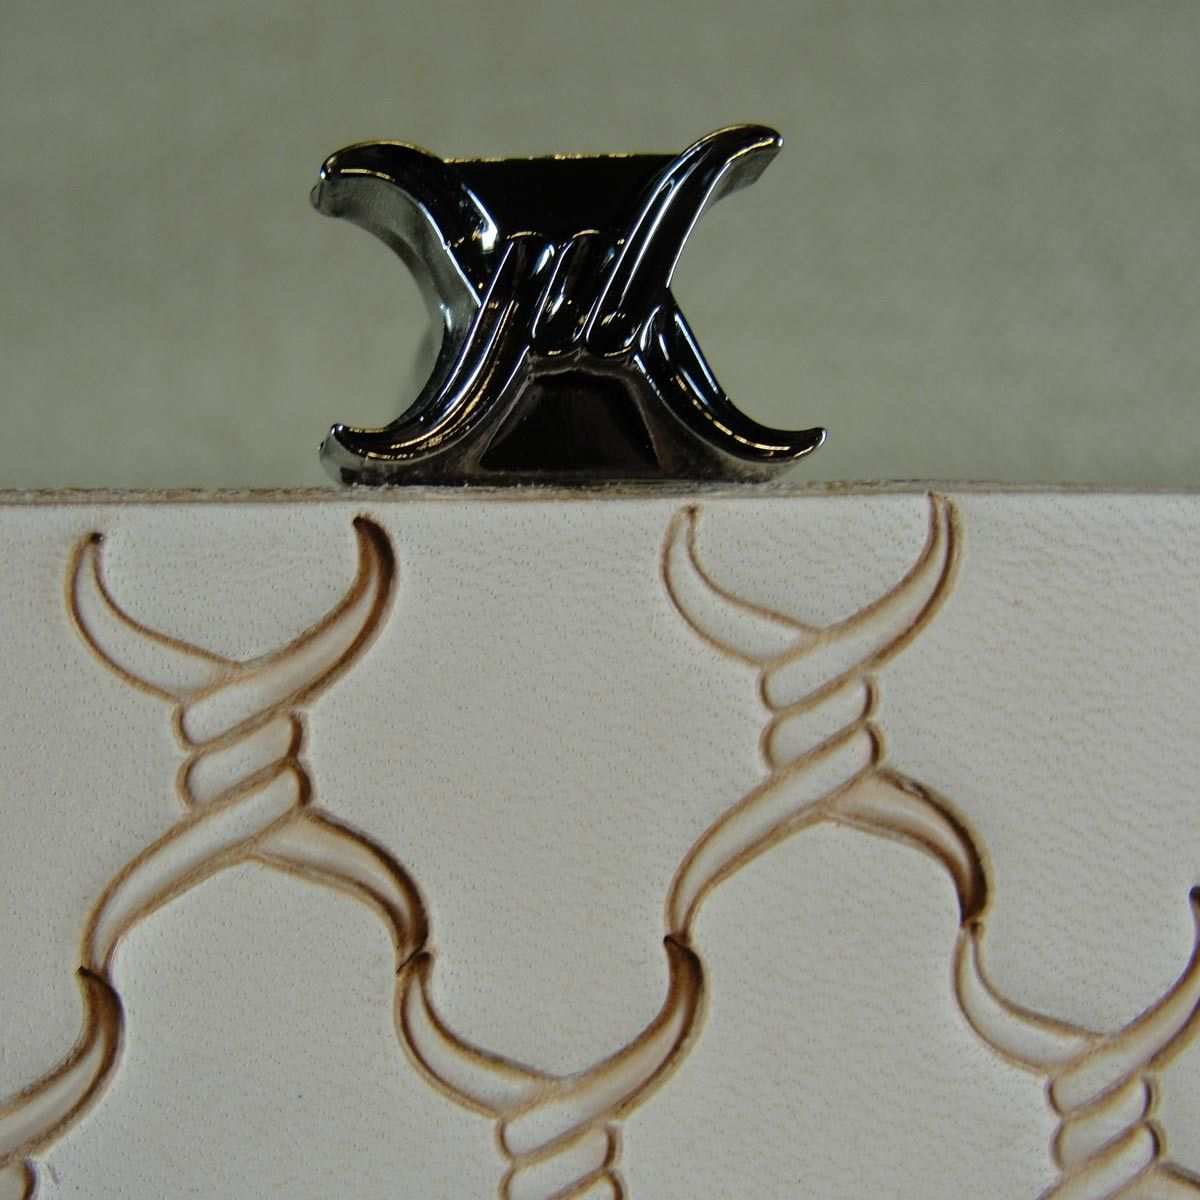 Leather Stamping Tool James Linnell Shining Light Meandering Border Stamp